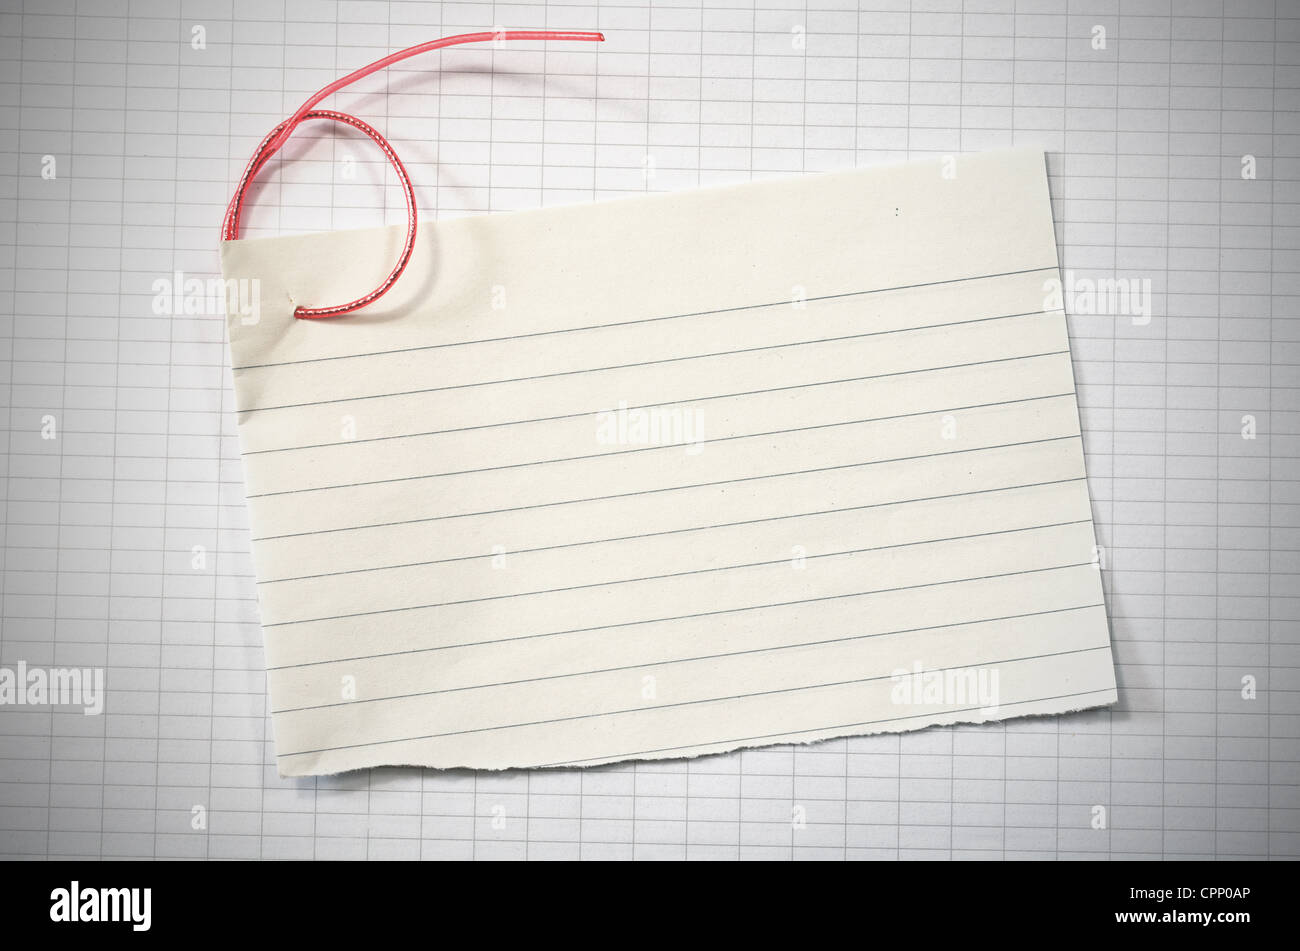 torn lined paper with red wire in shape of number six over